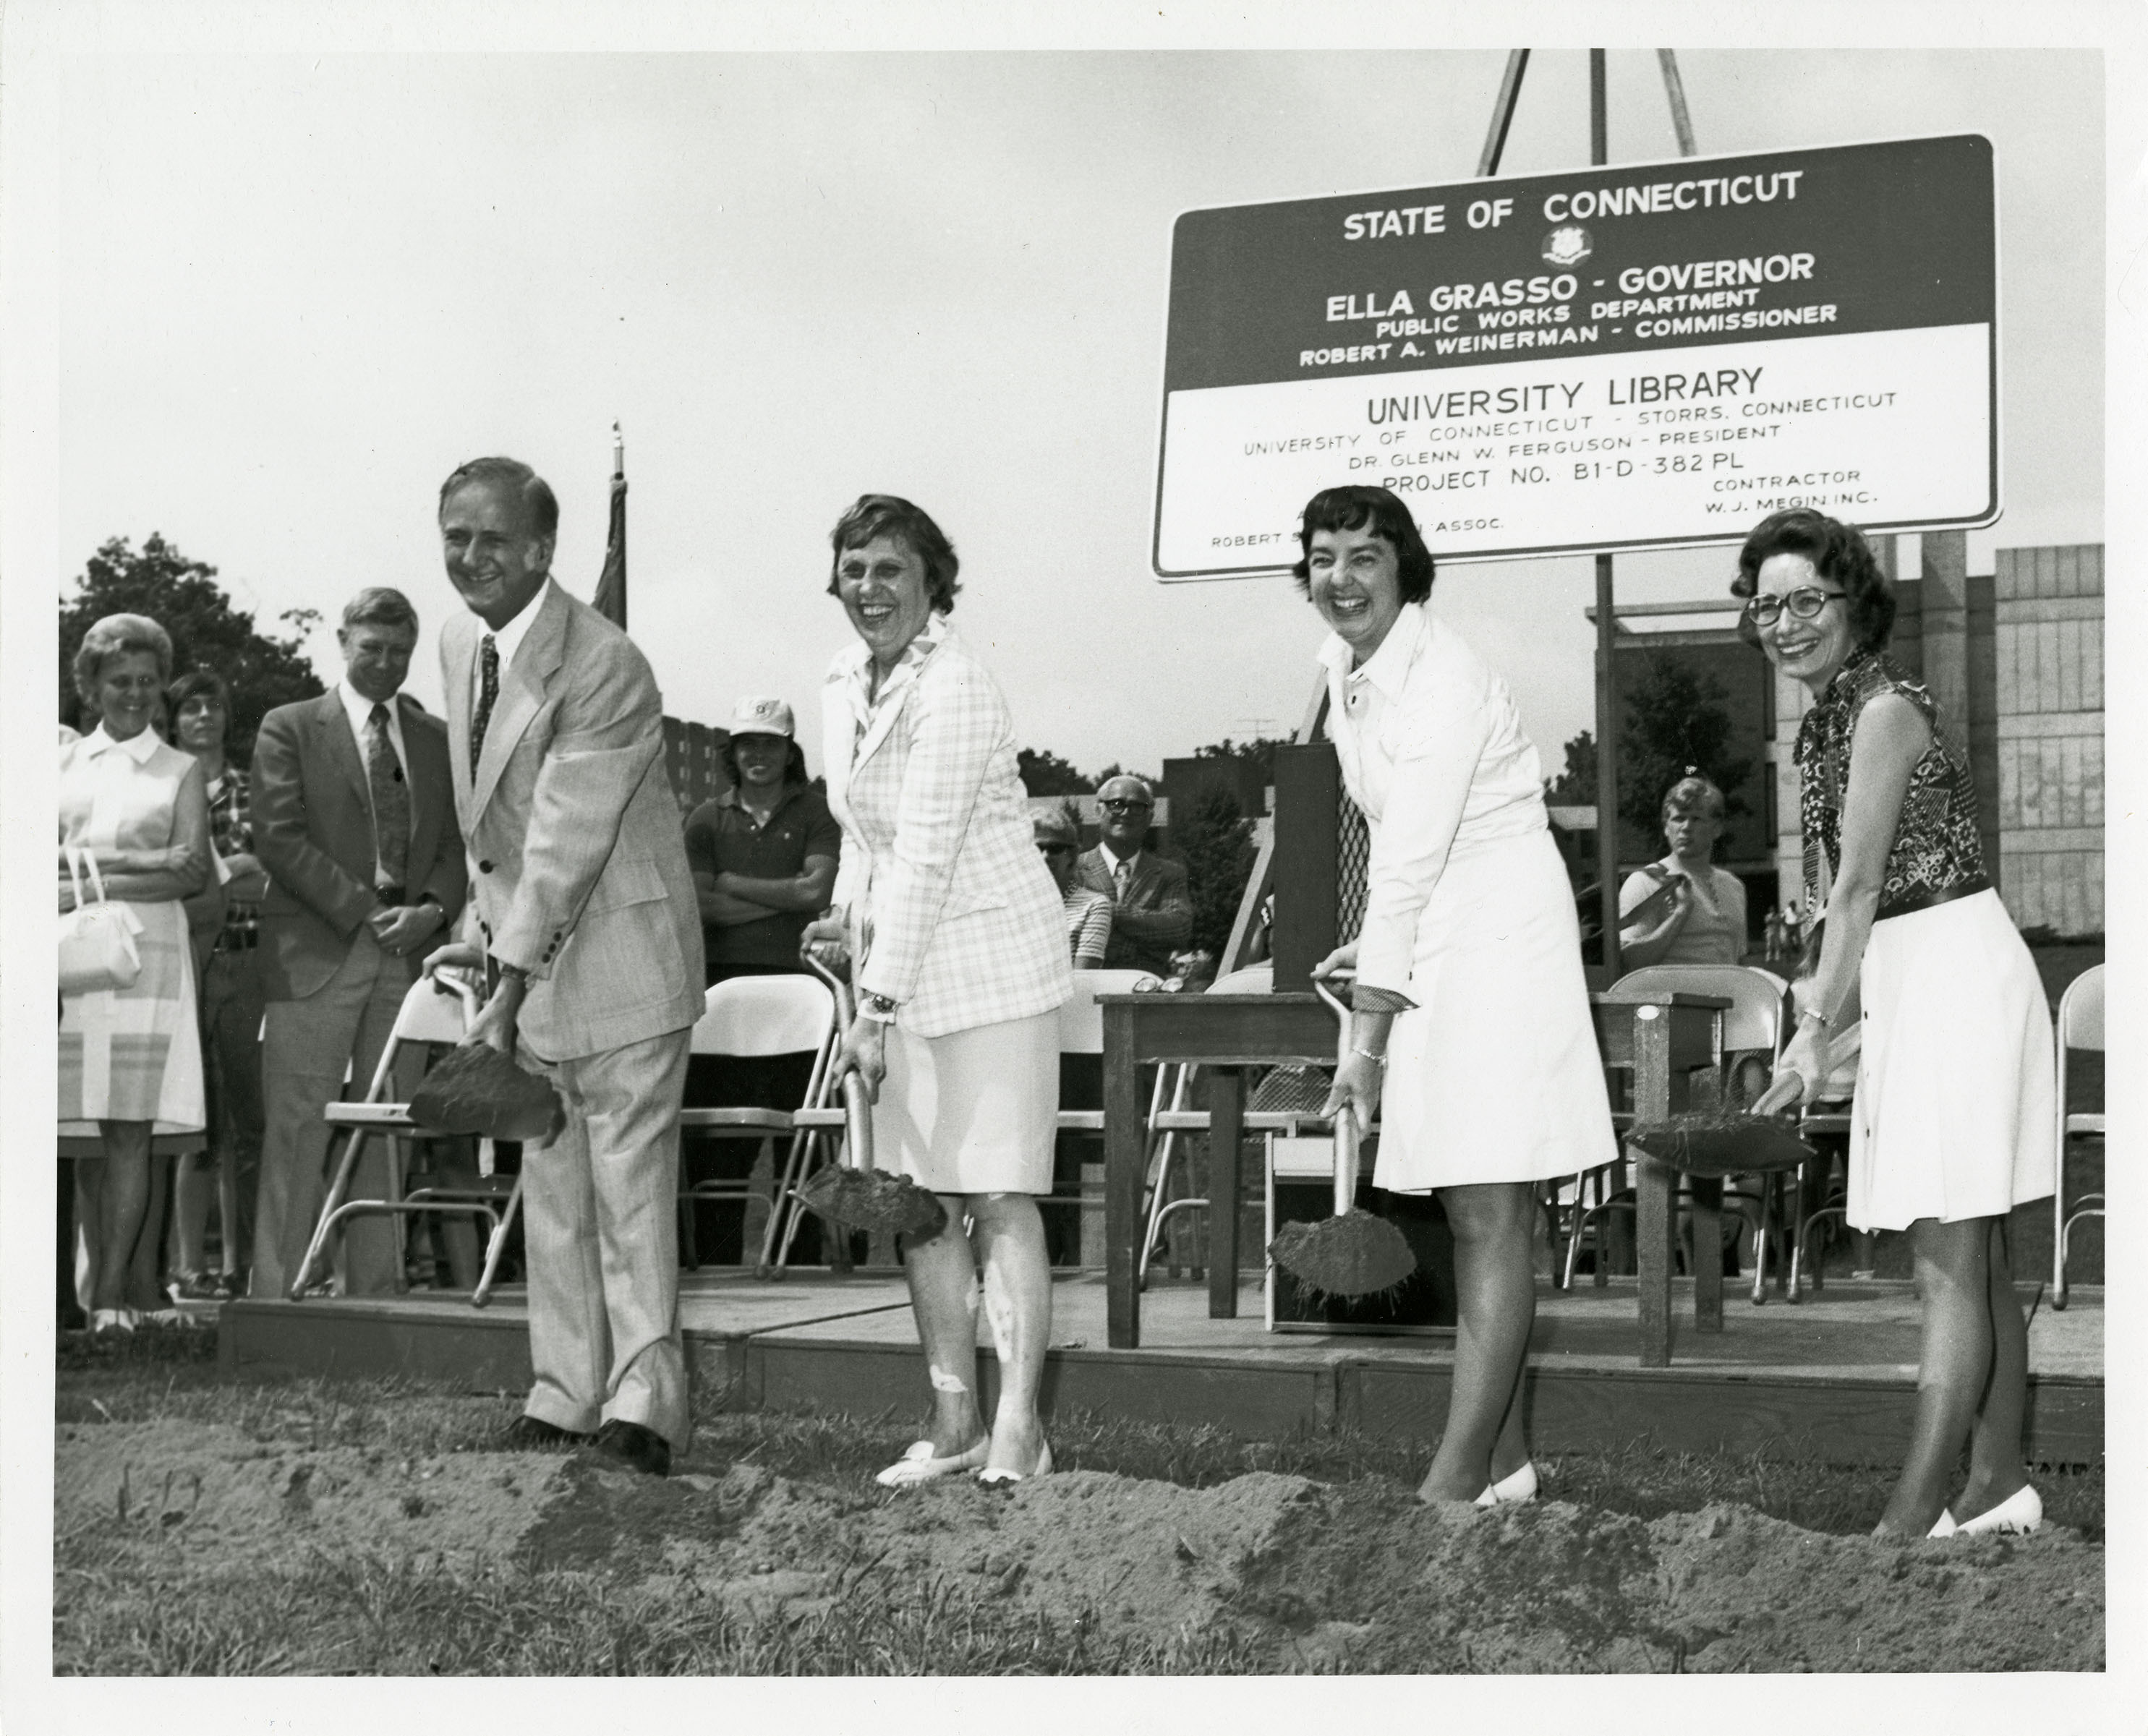 Ground breaking ceremony for the University Library, July 10, 1975